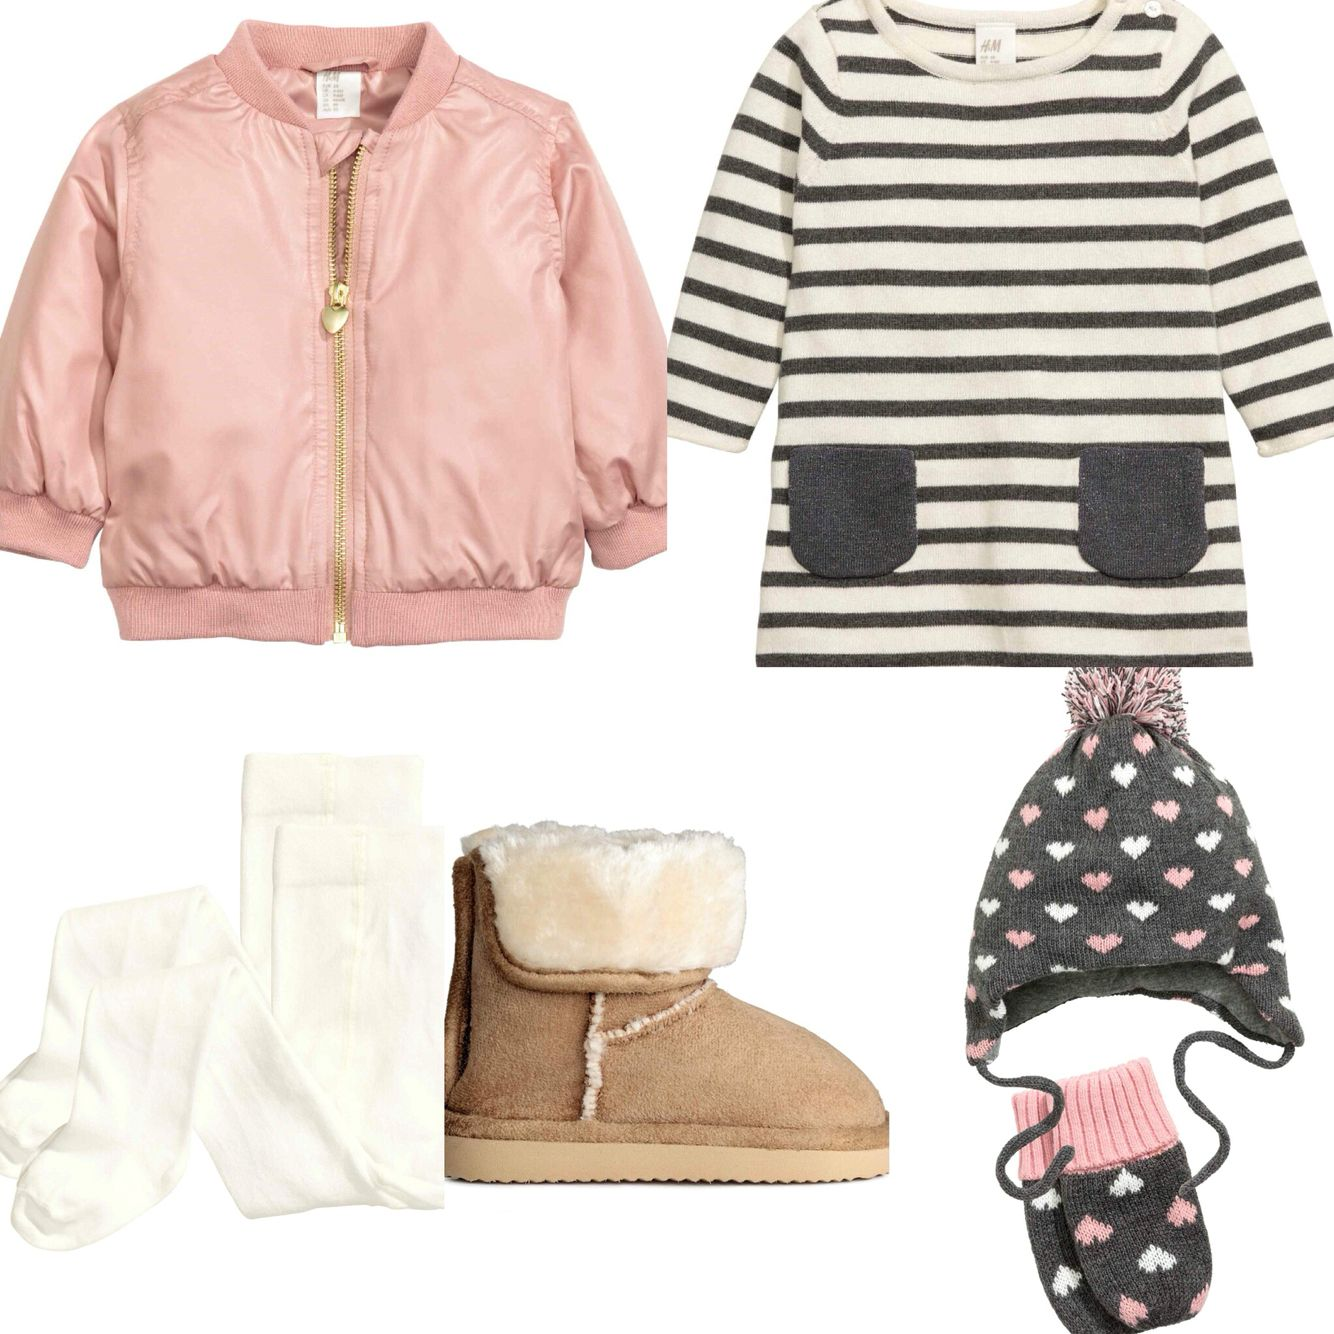 fcc542b56 Baby girl autumn outfit, dress, ugg boots, pink bomber jacket ...